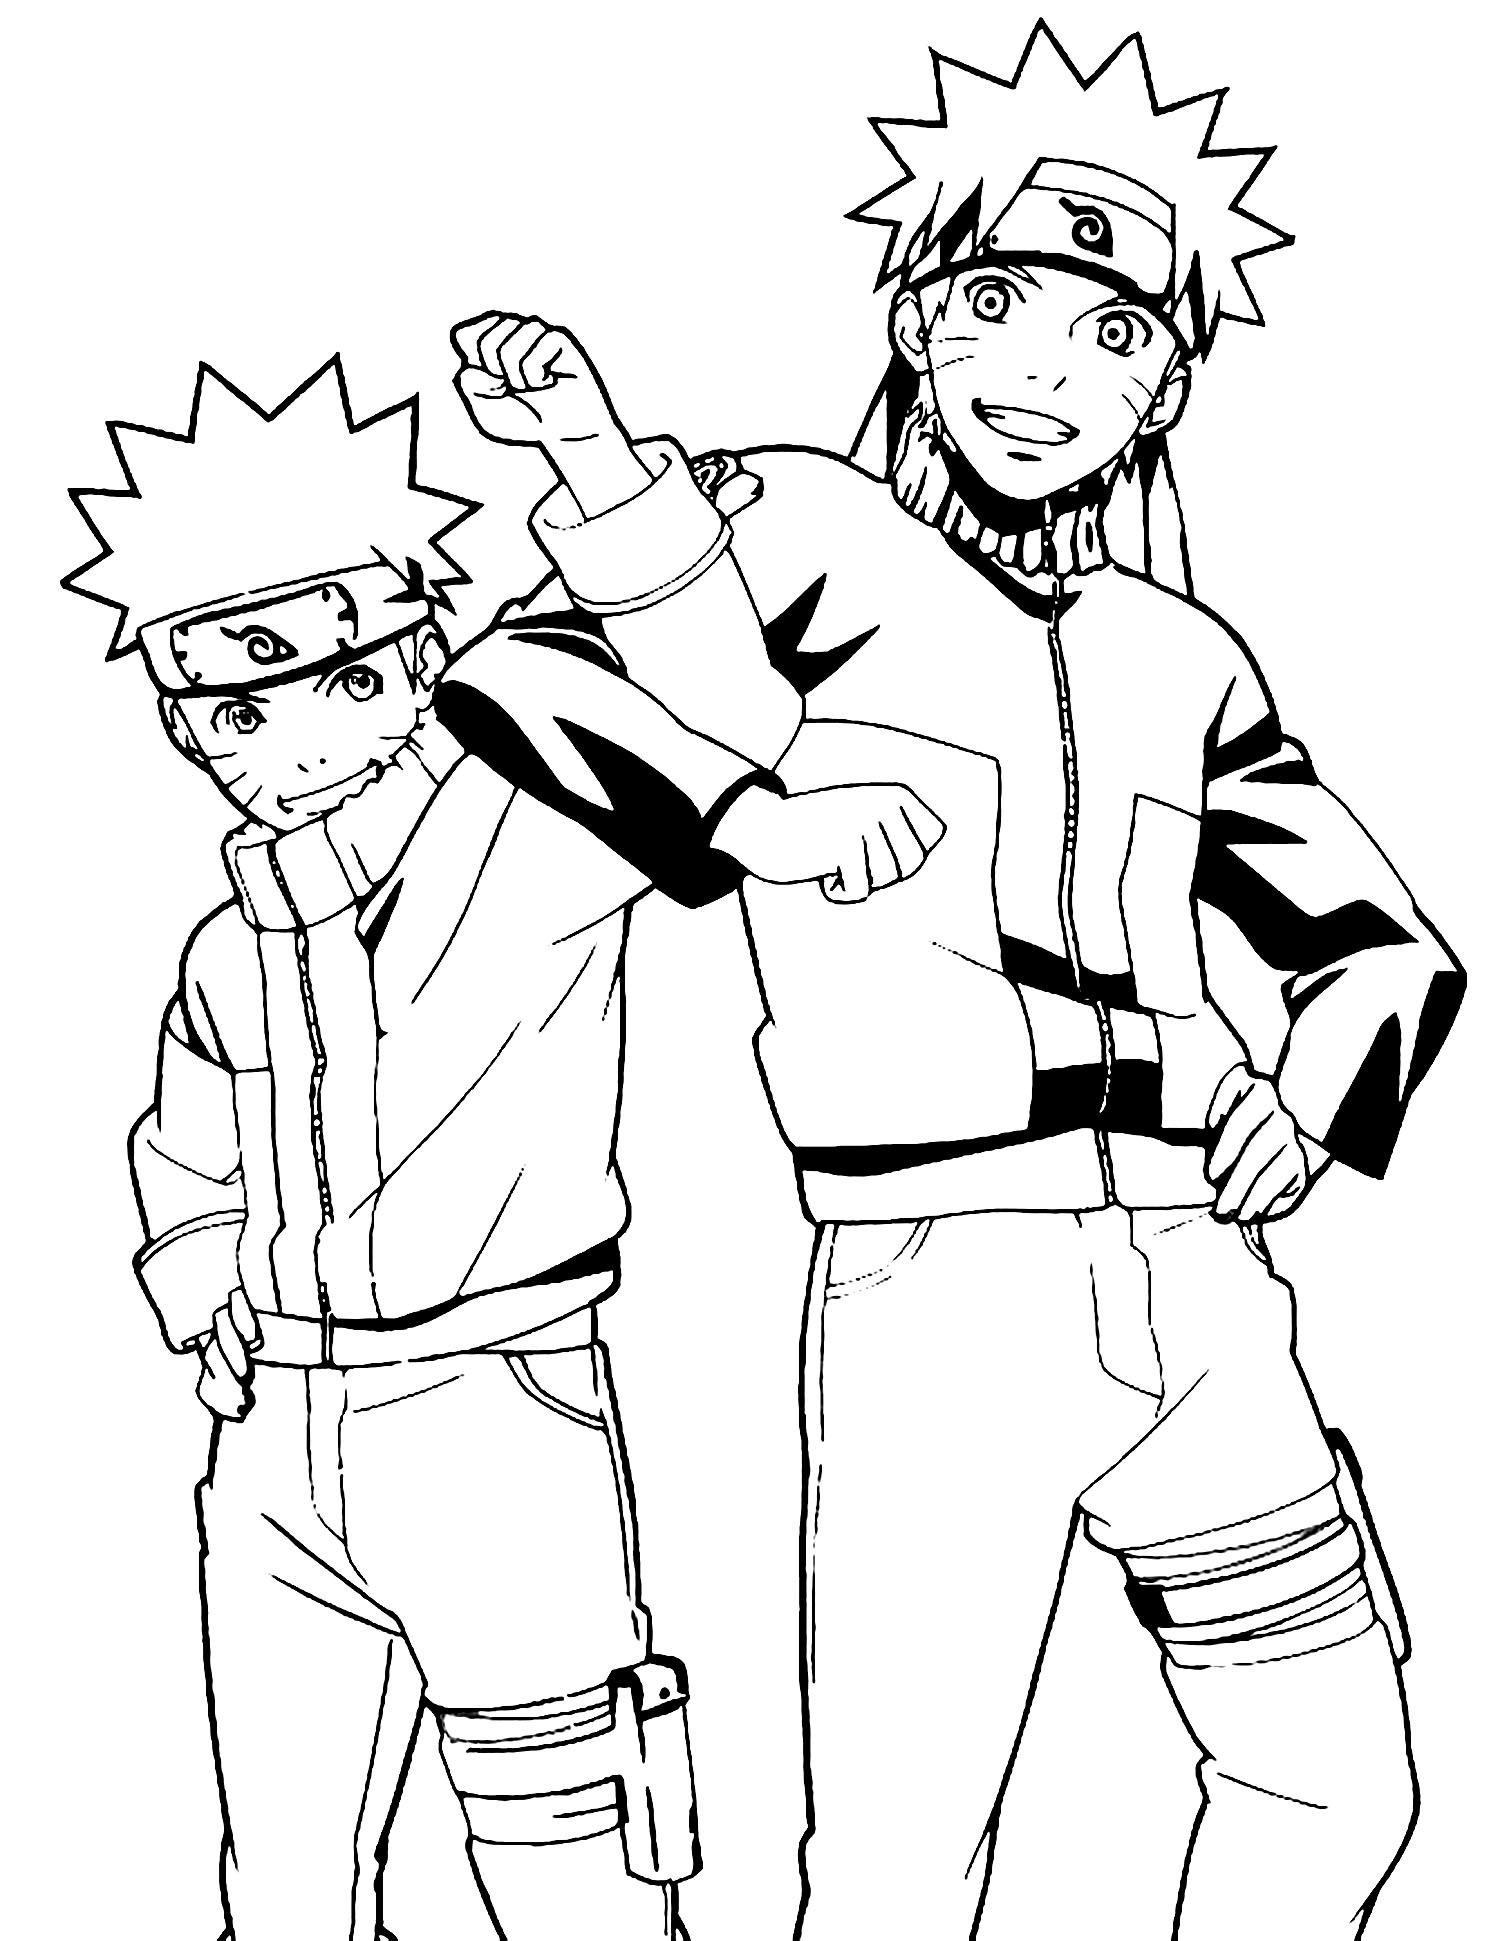 coloring pages of naruto naruto shippuden coloring pages to download and print for free pages coloring naruto of